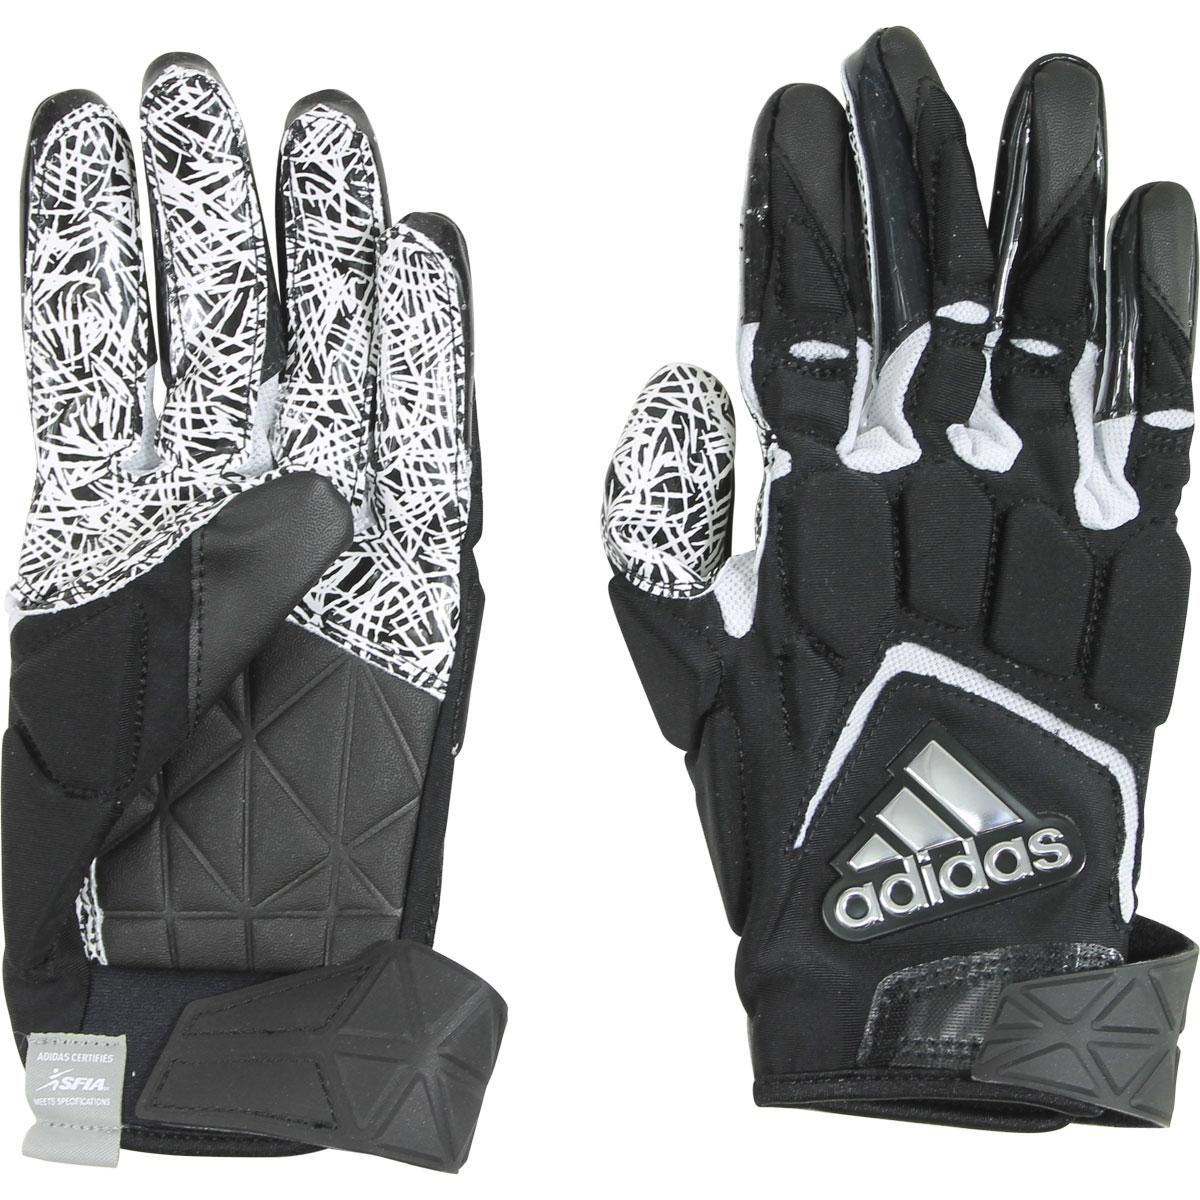 Adidas Men's Freak Max Lineman Football Gloves